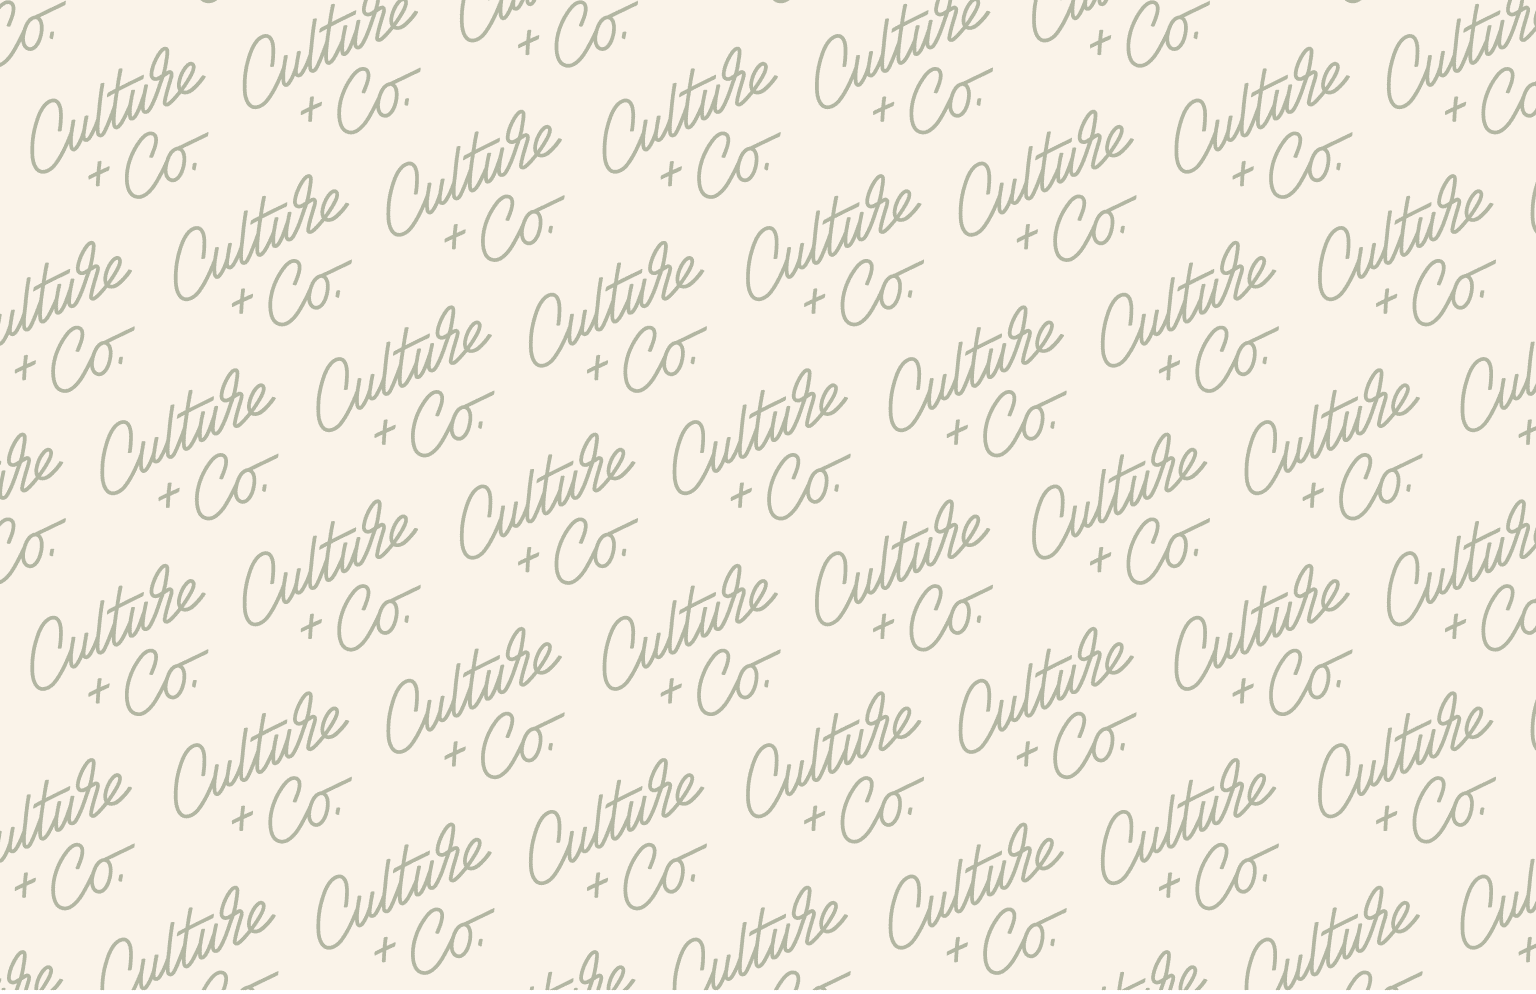 Culture + Co. Brand Identity + Packaging Design